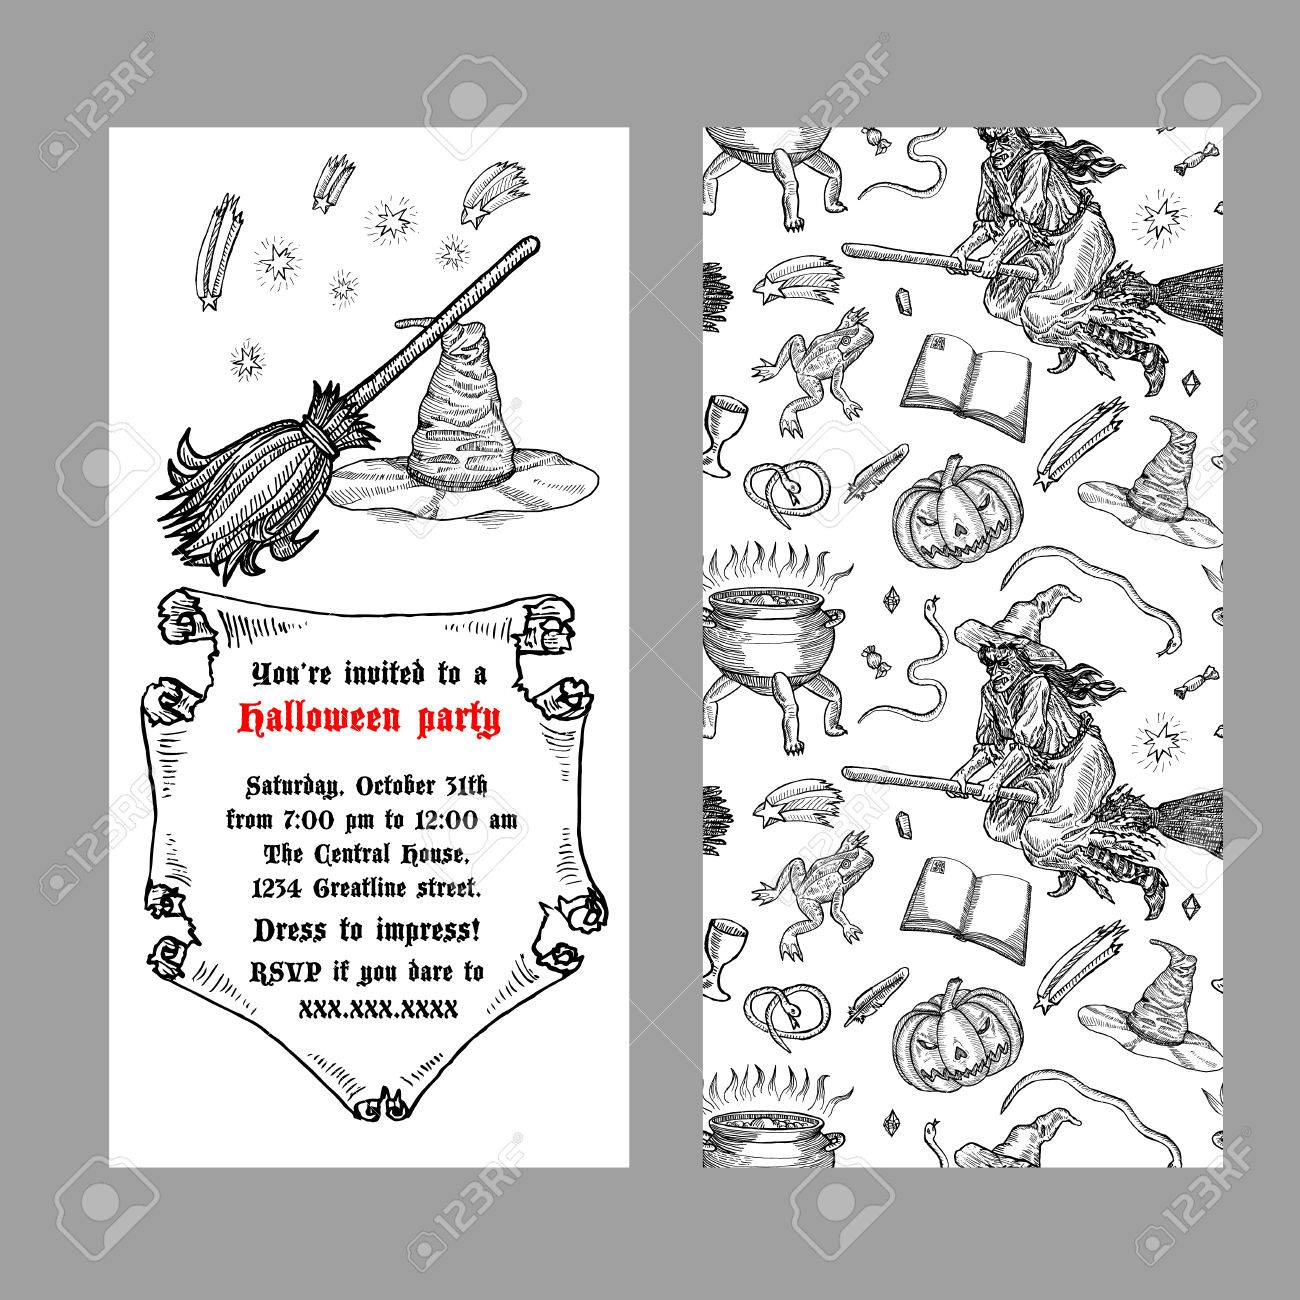 Medieval engraving style halloween invitation ink line illustration medieval engraving style halloween invitation ink line illustration with animals objects and characters for stopboris